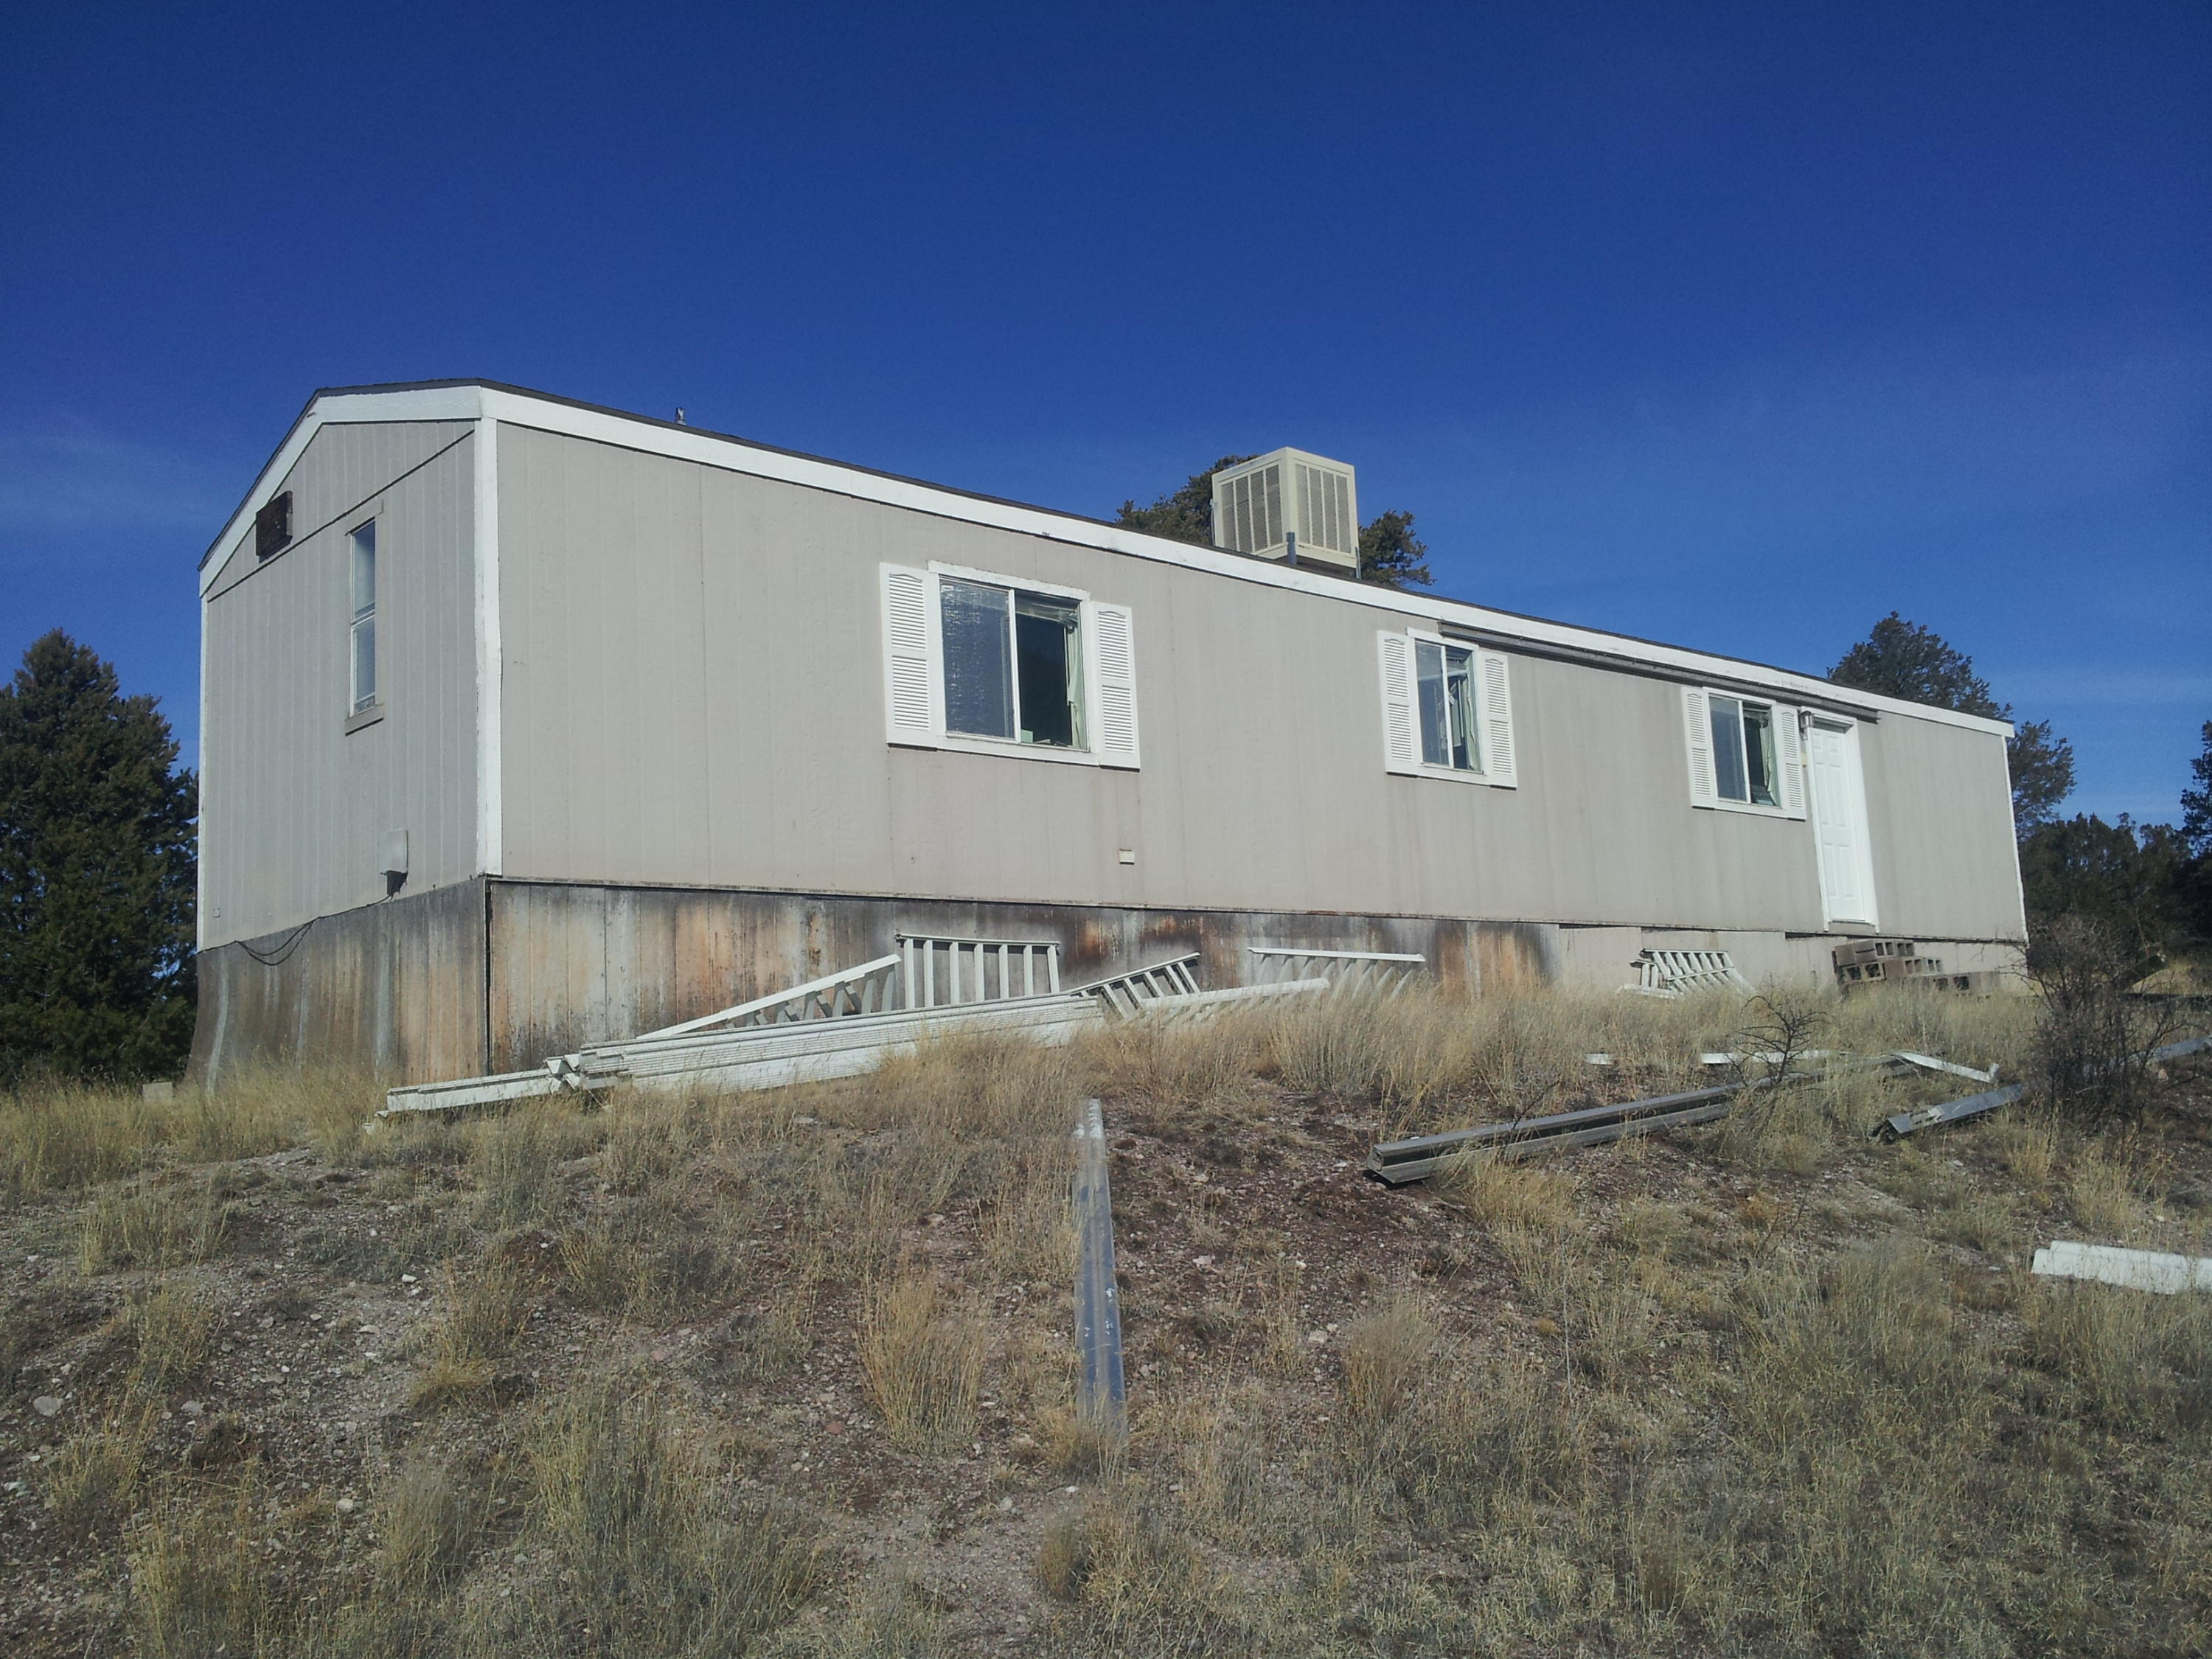 100 RIDGETOP Circle, Pie Town, NM 87827 - Pie Town, NM real estate listing